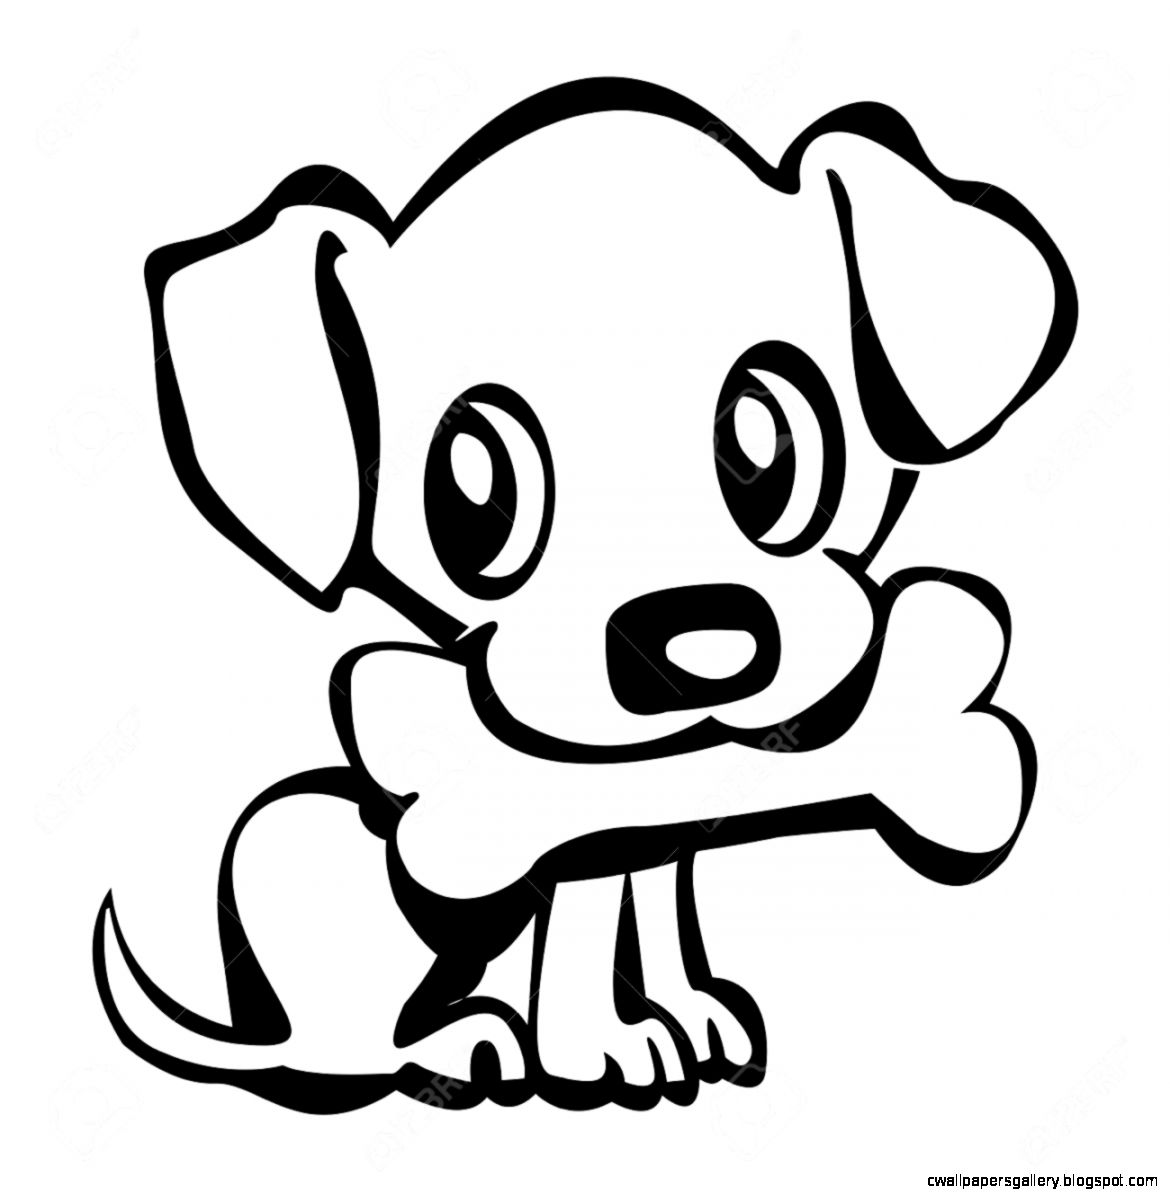 Cute dog drawings - photo#43